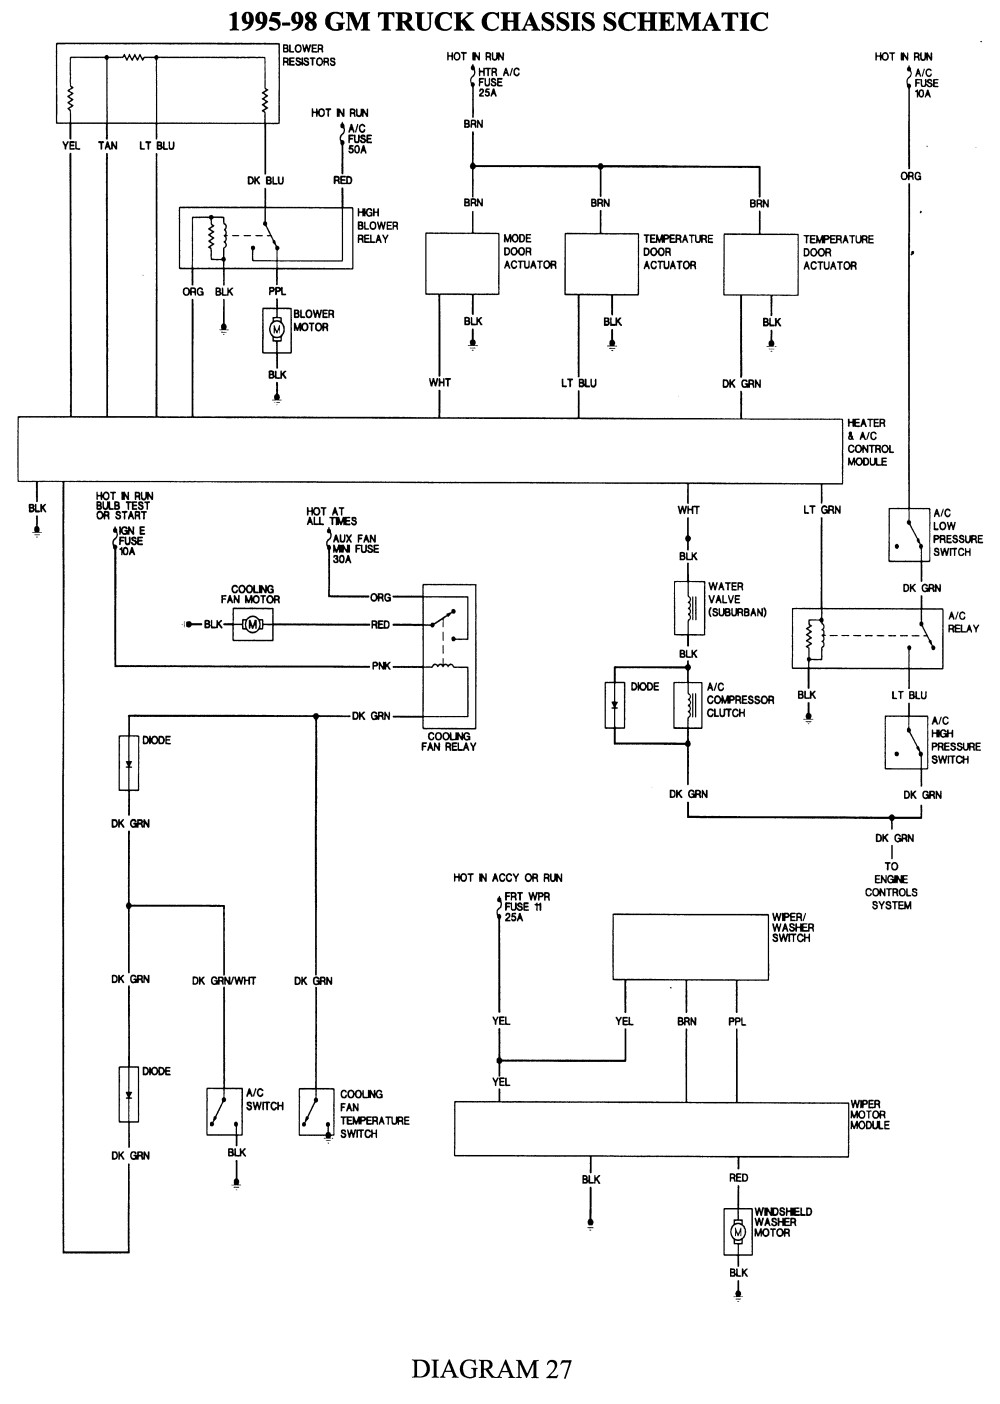 Repair Guides Wiring Diagrams Wiring Diagrams Tail Light Wiring Diagram 1995 Chevy Truck Chevrolet Wiring